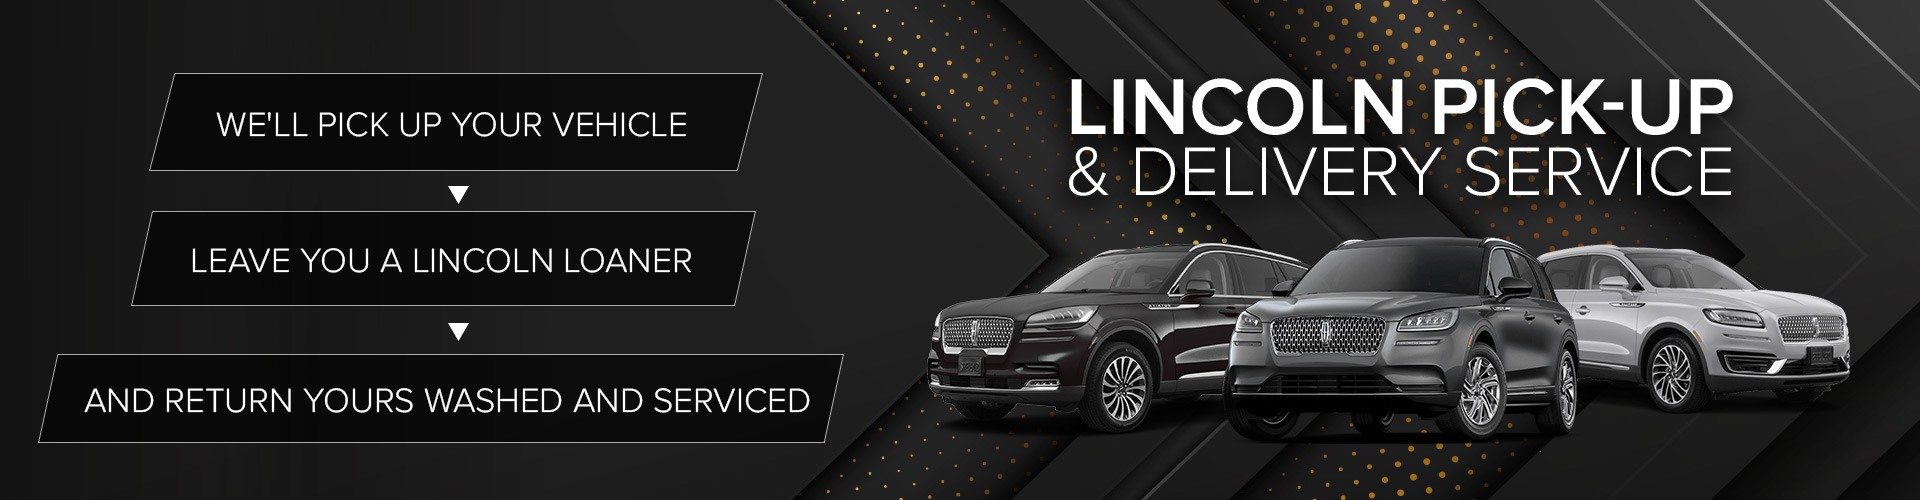 Lincoln Pick-Up & Delivery Service